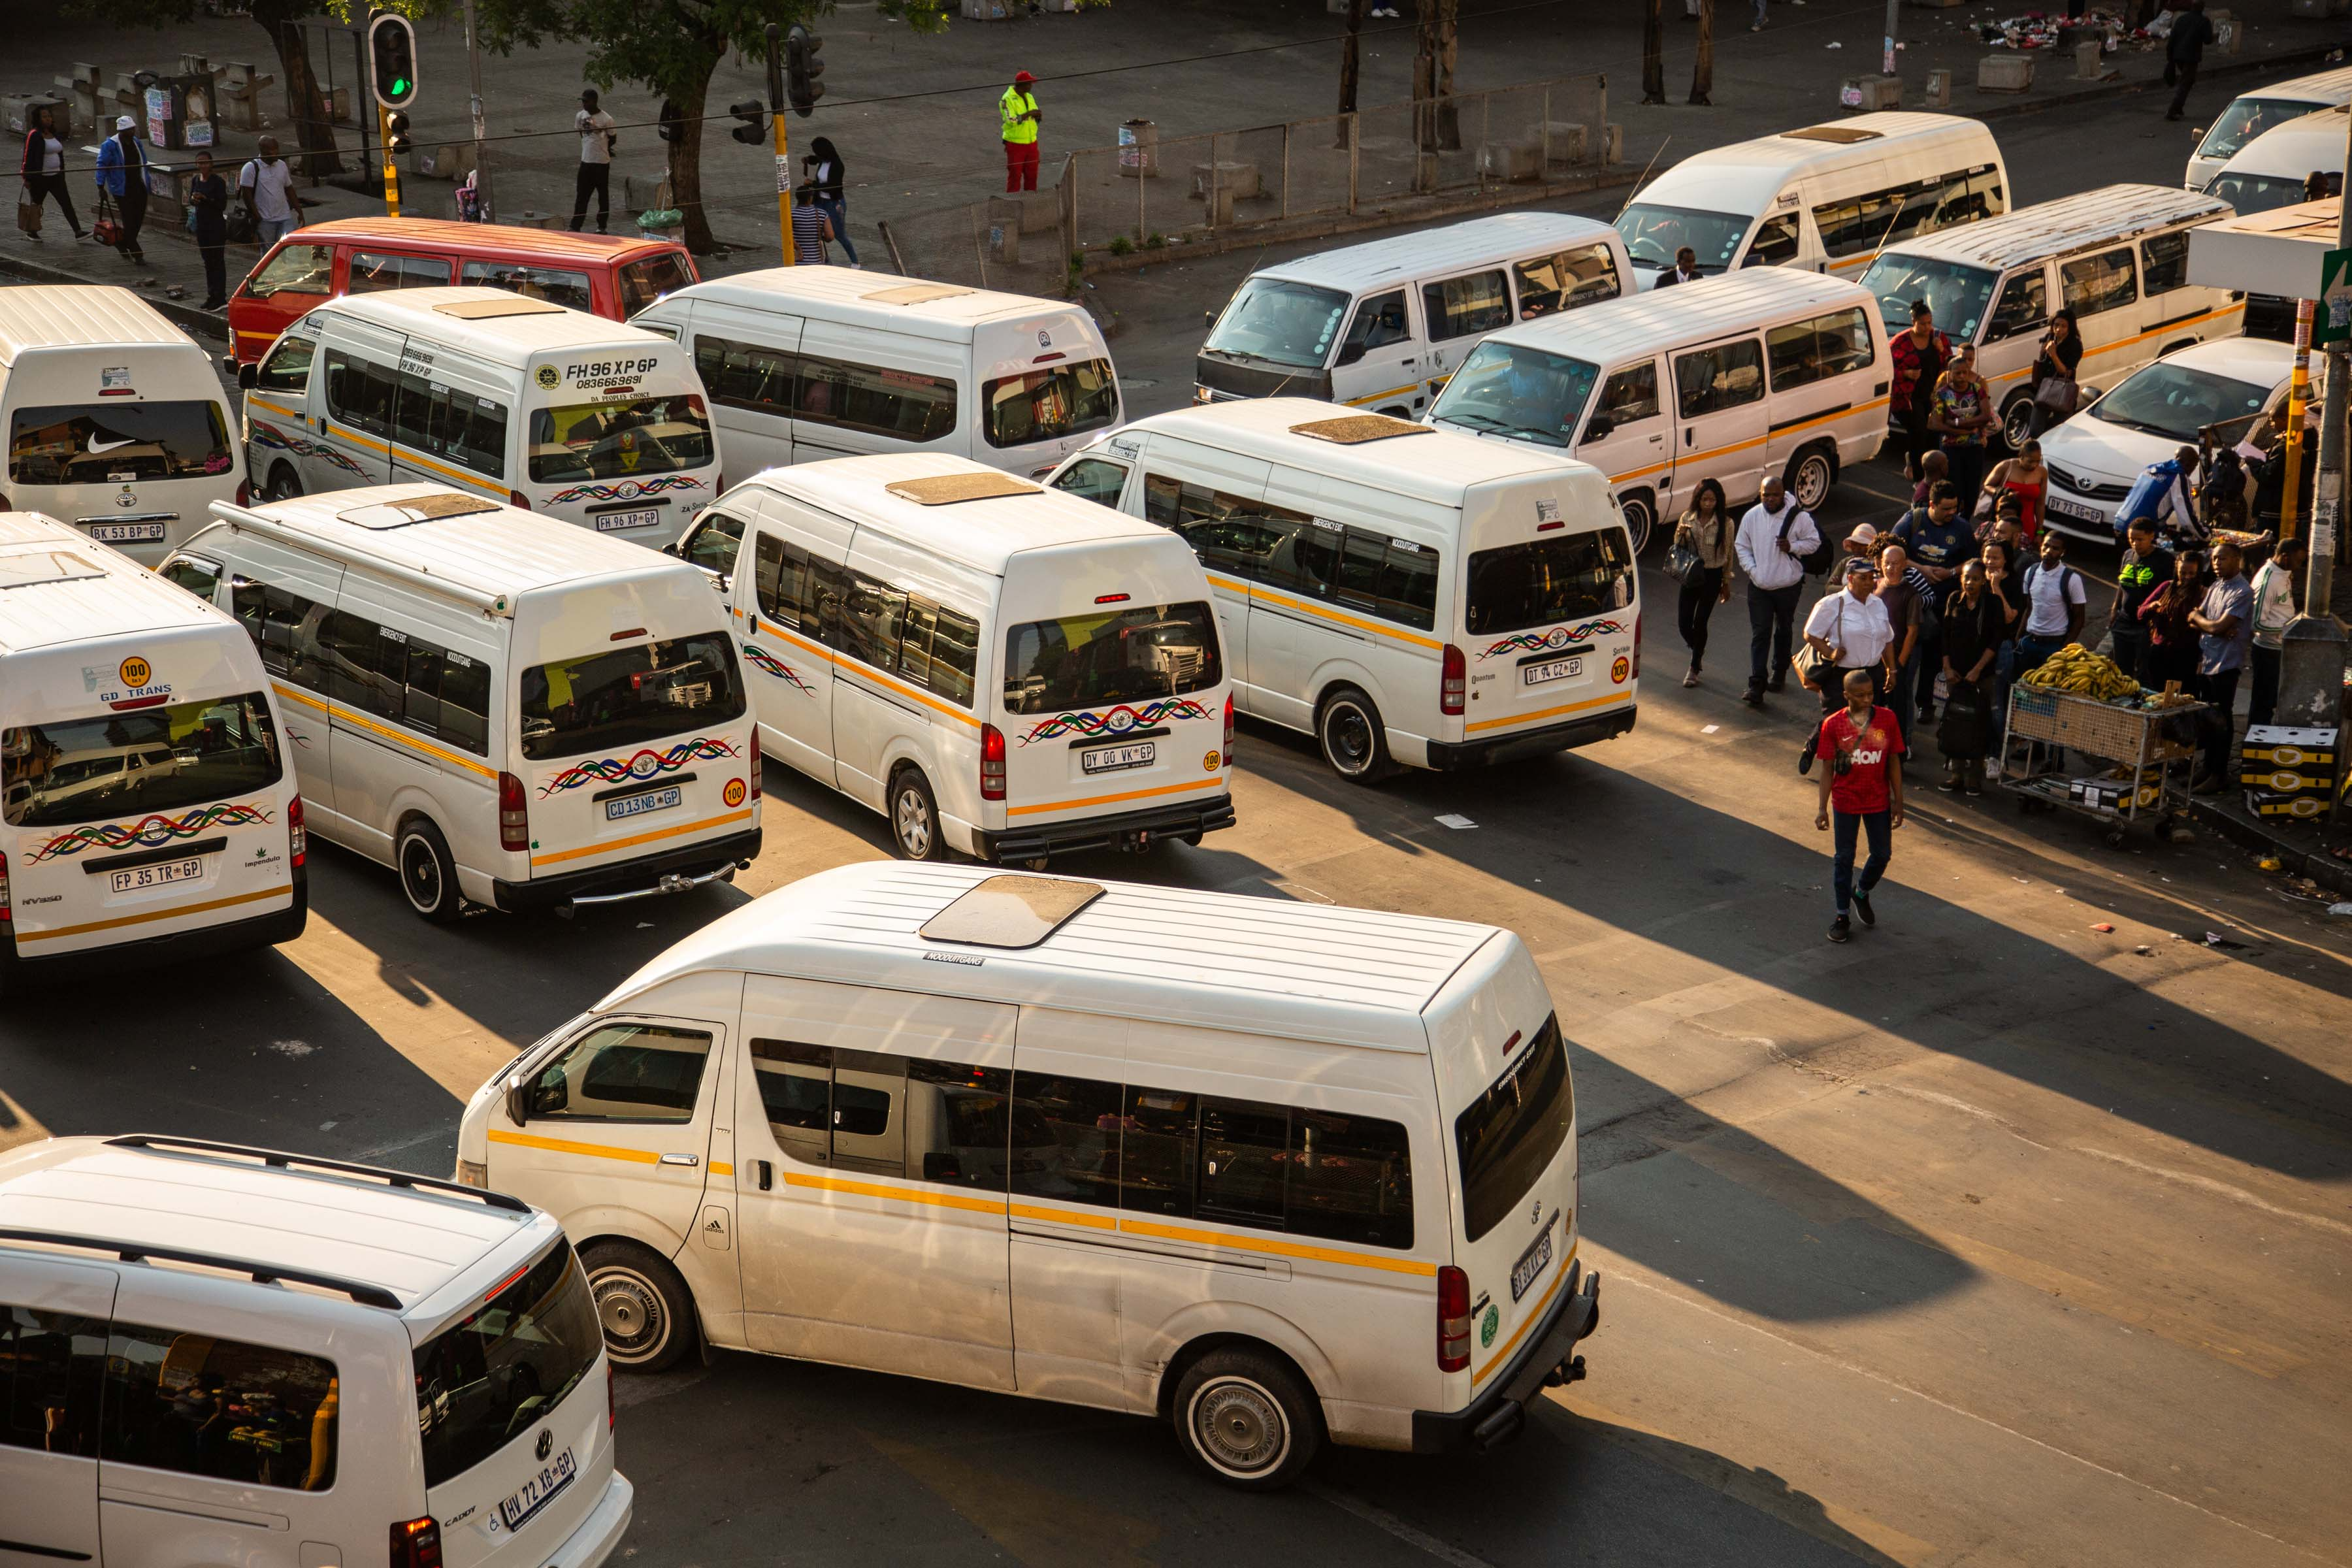 24 October 2019: Business has declined for the vendors at the Bree Taxi Rank as more and more street traders without vending permits have arrived and set up in the busiest spots. (Photograph by Noncedo Gxekwa)